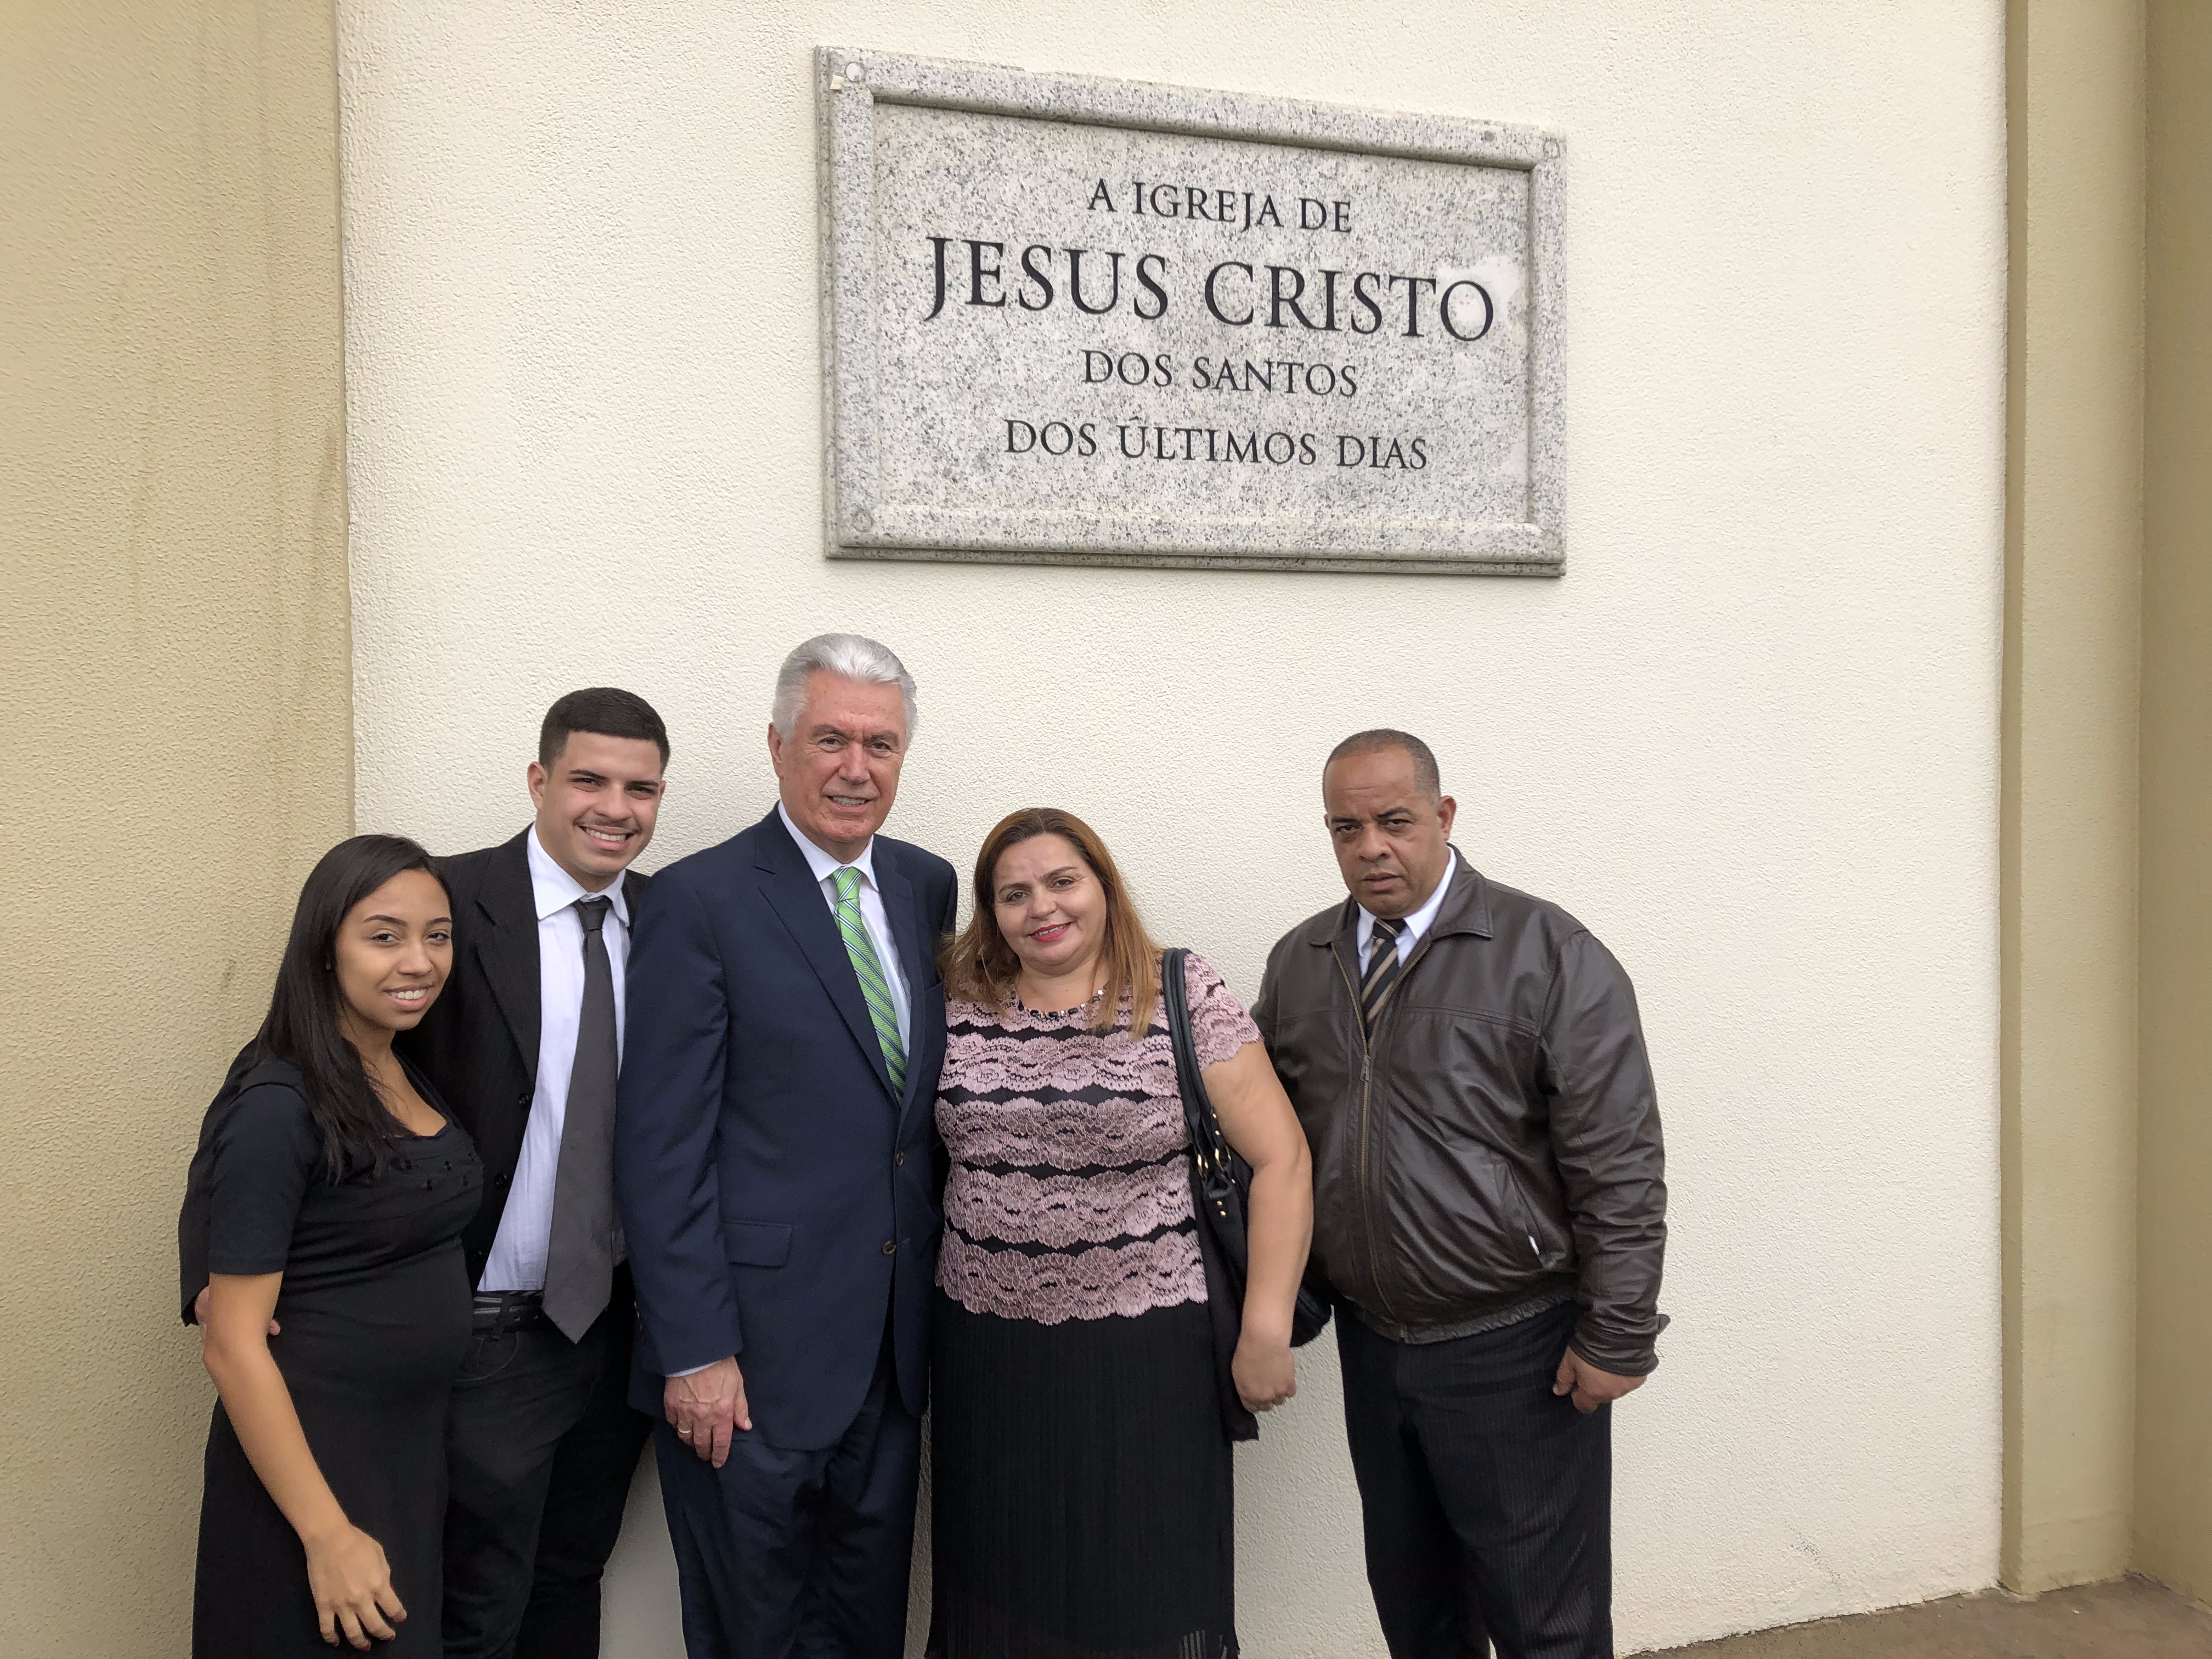 Elder Dieter F. Uchtdorf of the Quorum of the Twelve Apostles joins the Gondim family for a photo outside their meetinghouse in Sao Paulo, Brazil, on Feb. 17, 2019. At right are parents Rusana Gondim Rodrigues and Raimundo Ferreira Rodrigues; at left are friend Aline Lima Pereira and brother Matheus Gondim Rodrigues.